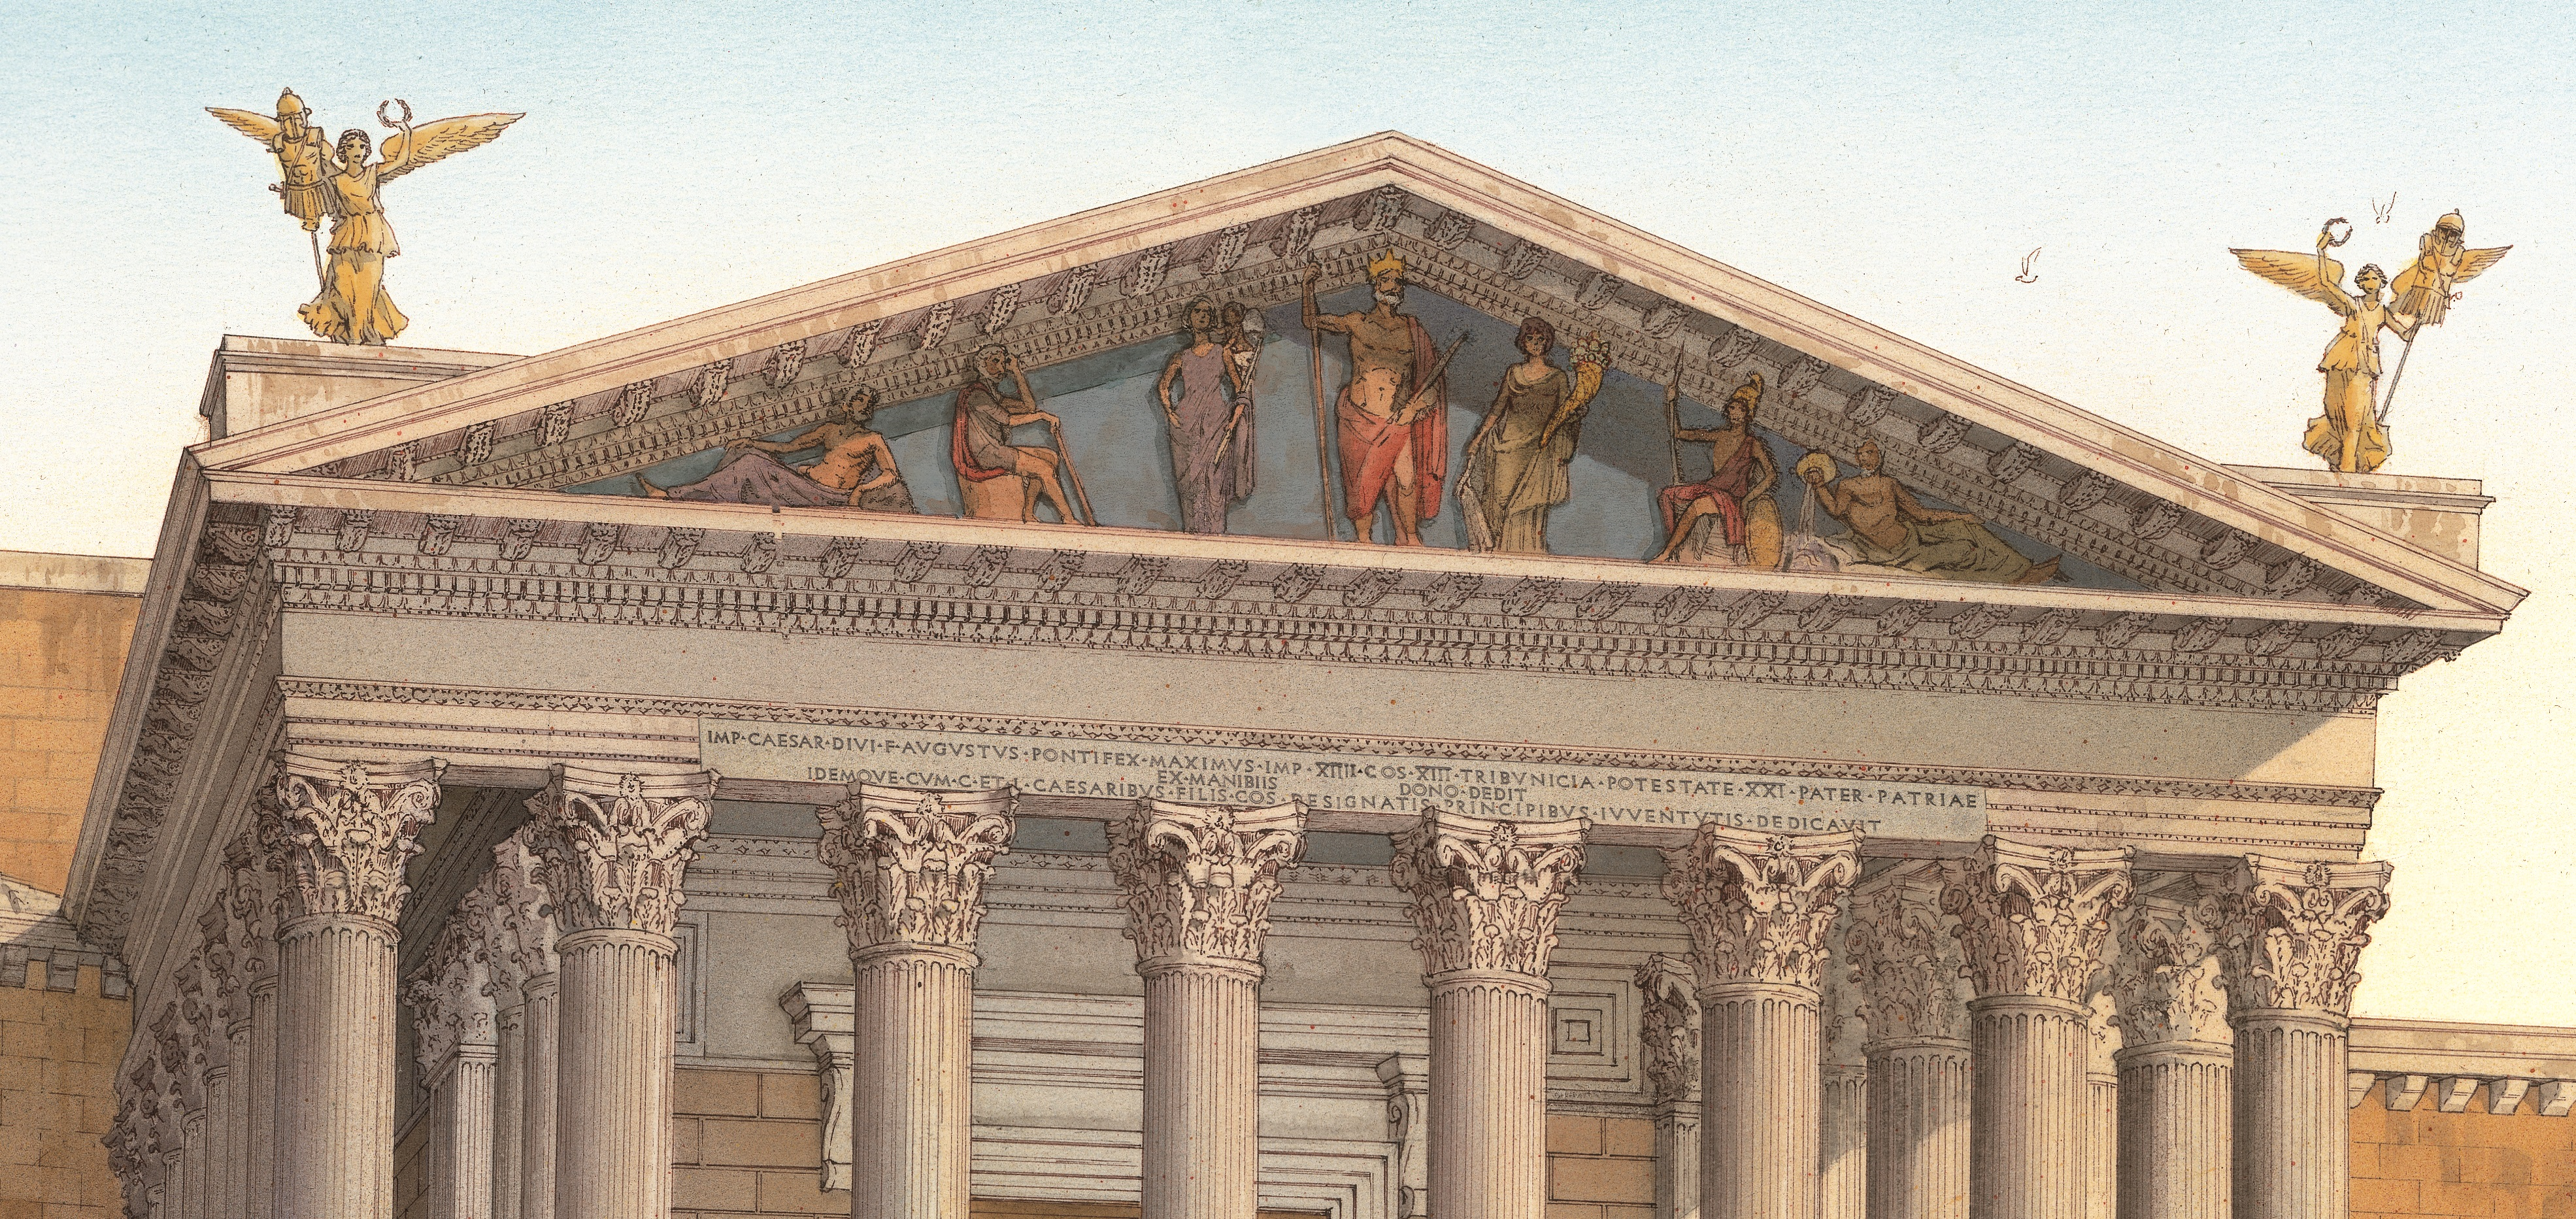 Reconstructive view of the pediment of the Temple of Mars Ultor